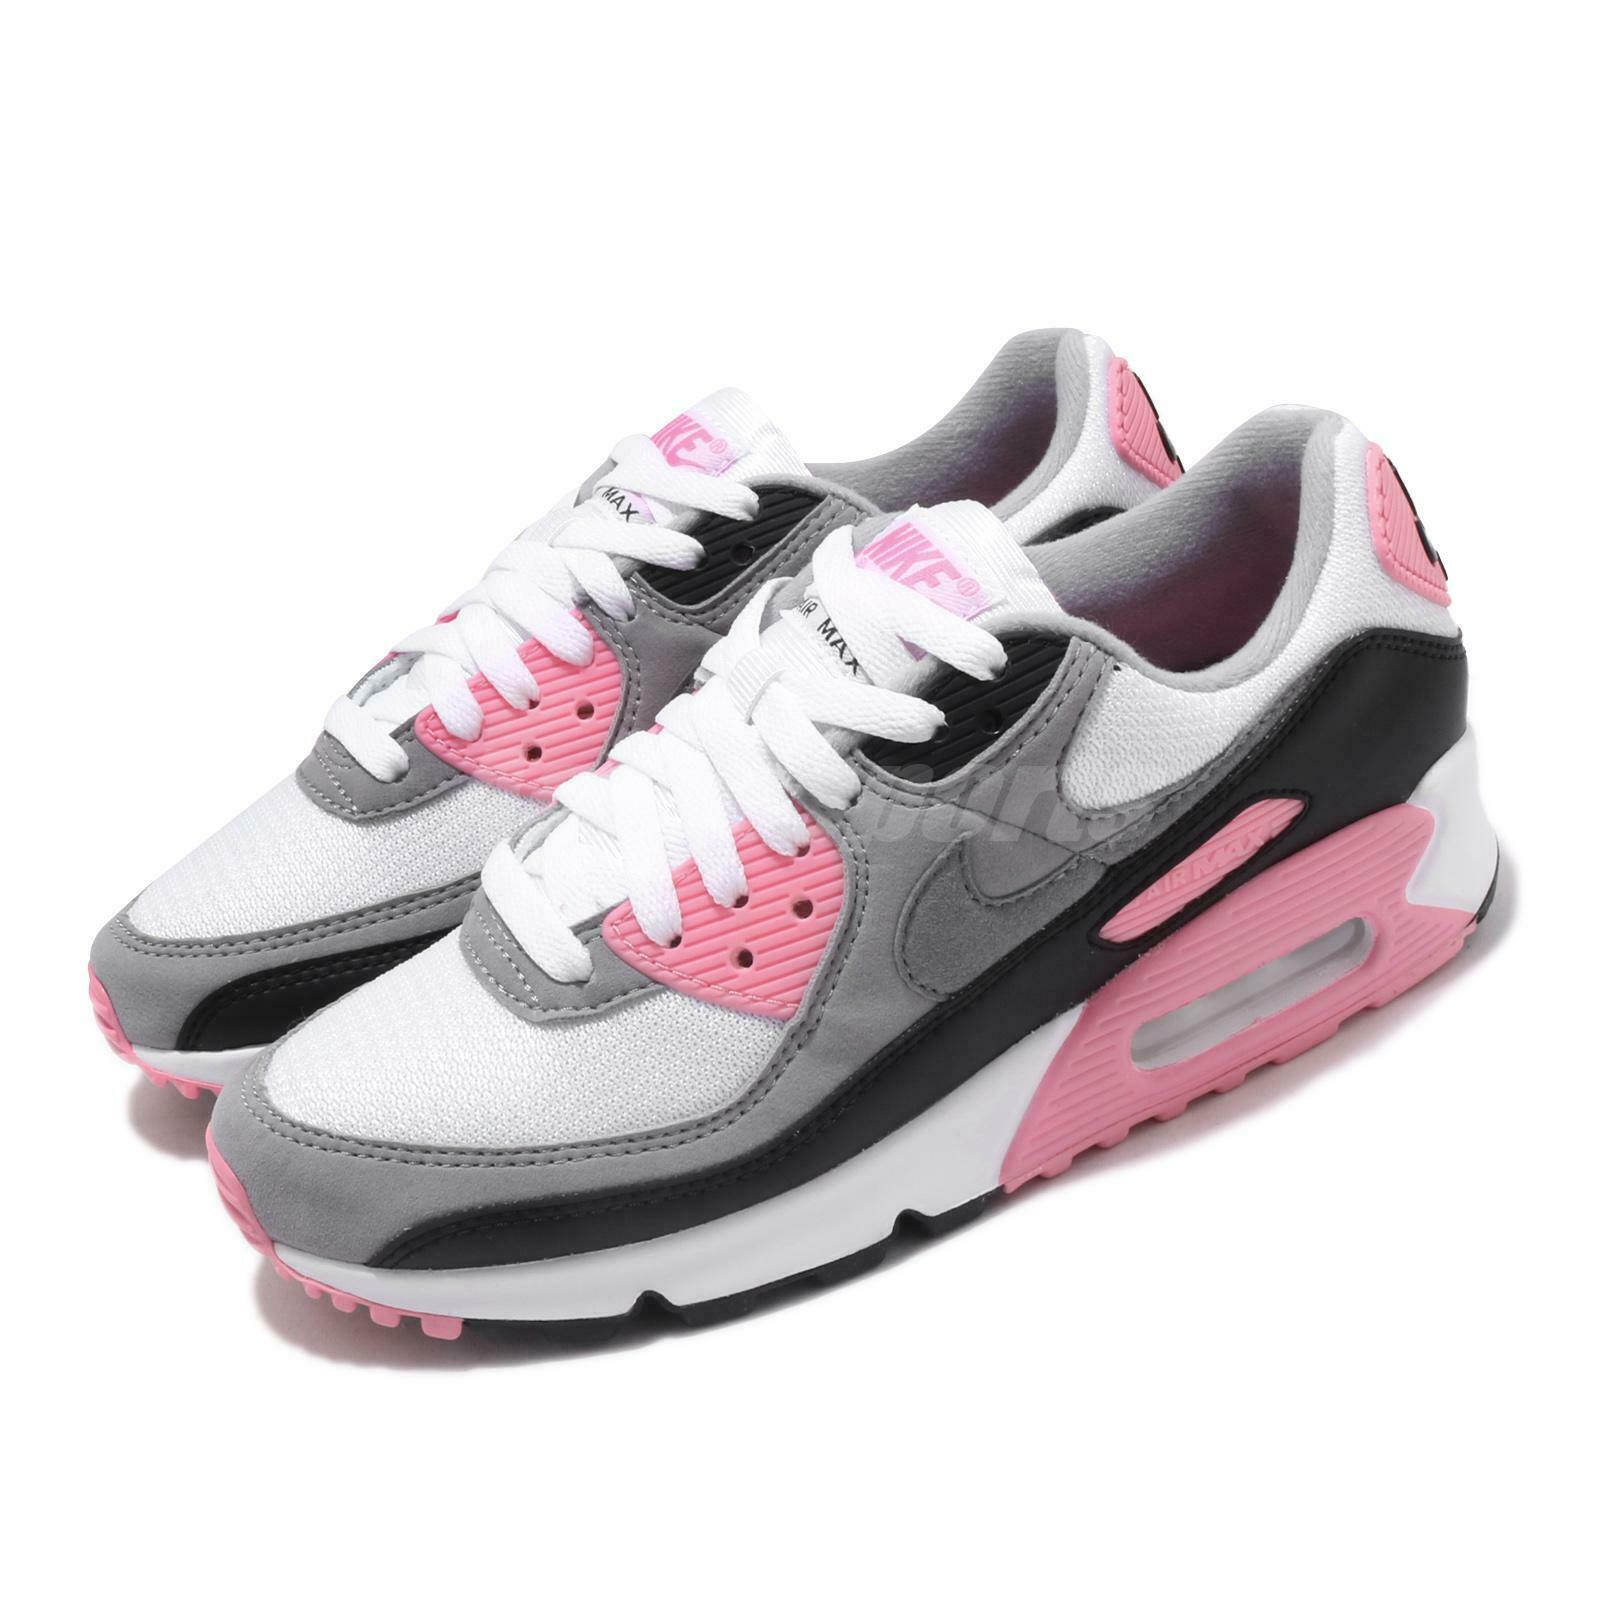 página Mente Silicio  Nike Shoes Women's SNEAKERS 616723 603 Air Max Thea PRM Pink Rose Women EUR  38.5 for sale online | eBay